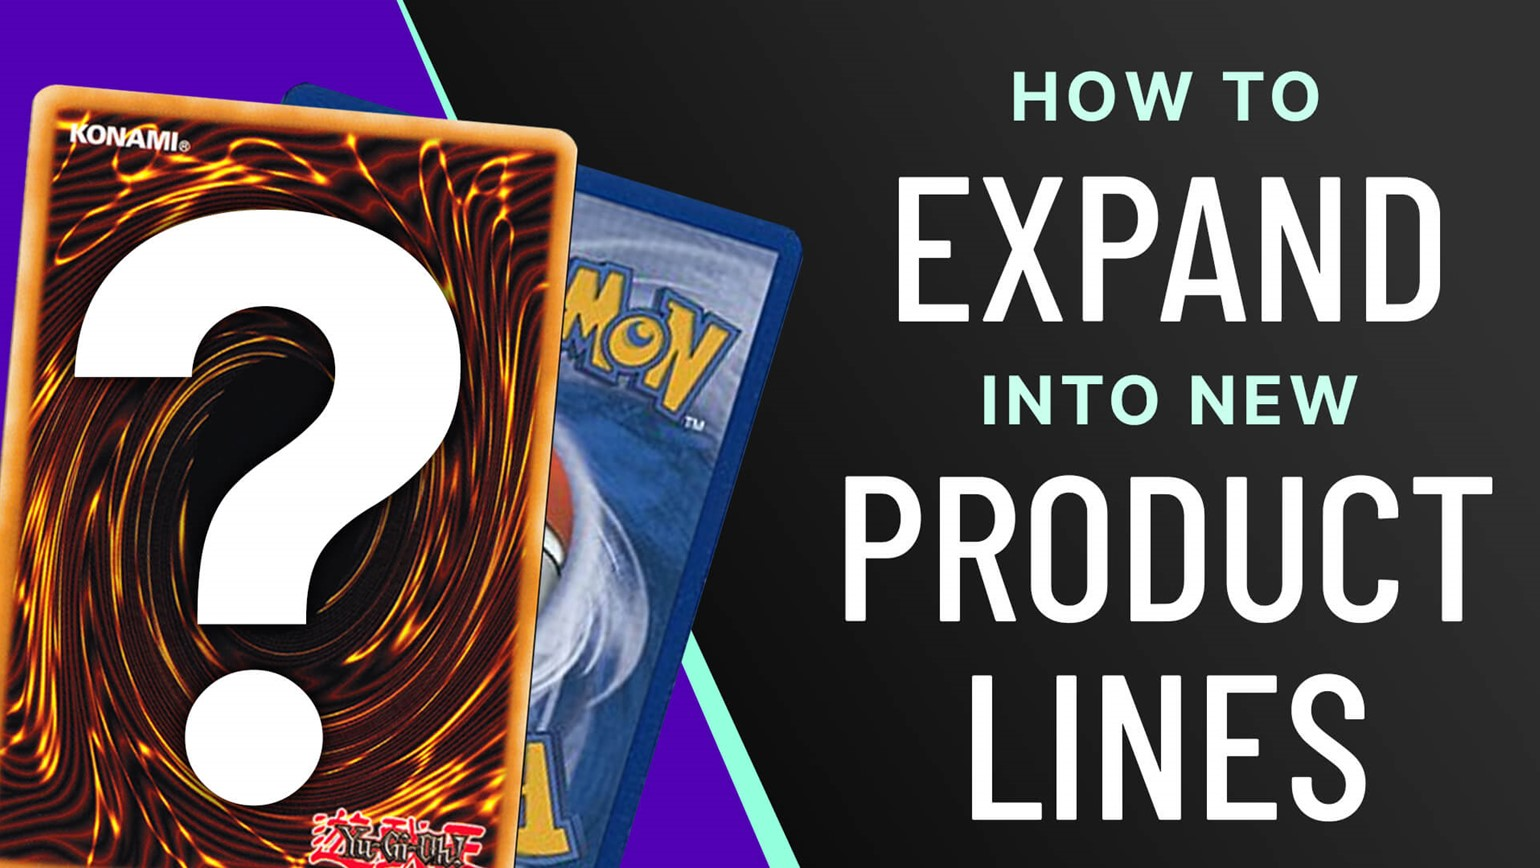 How To Expand Into New Product Lines